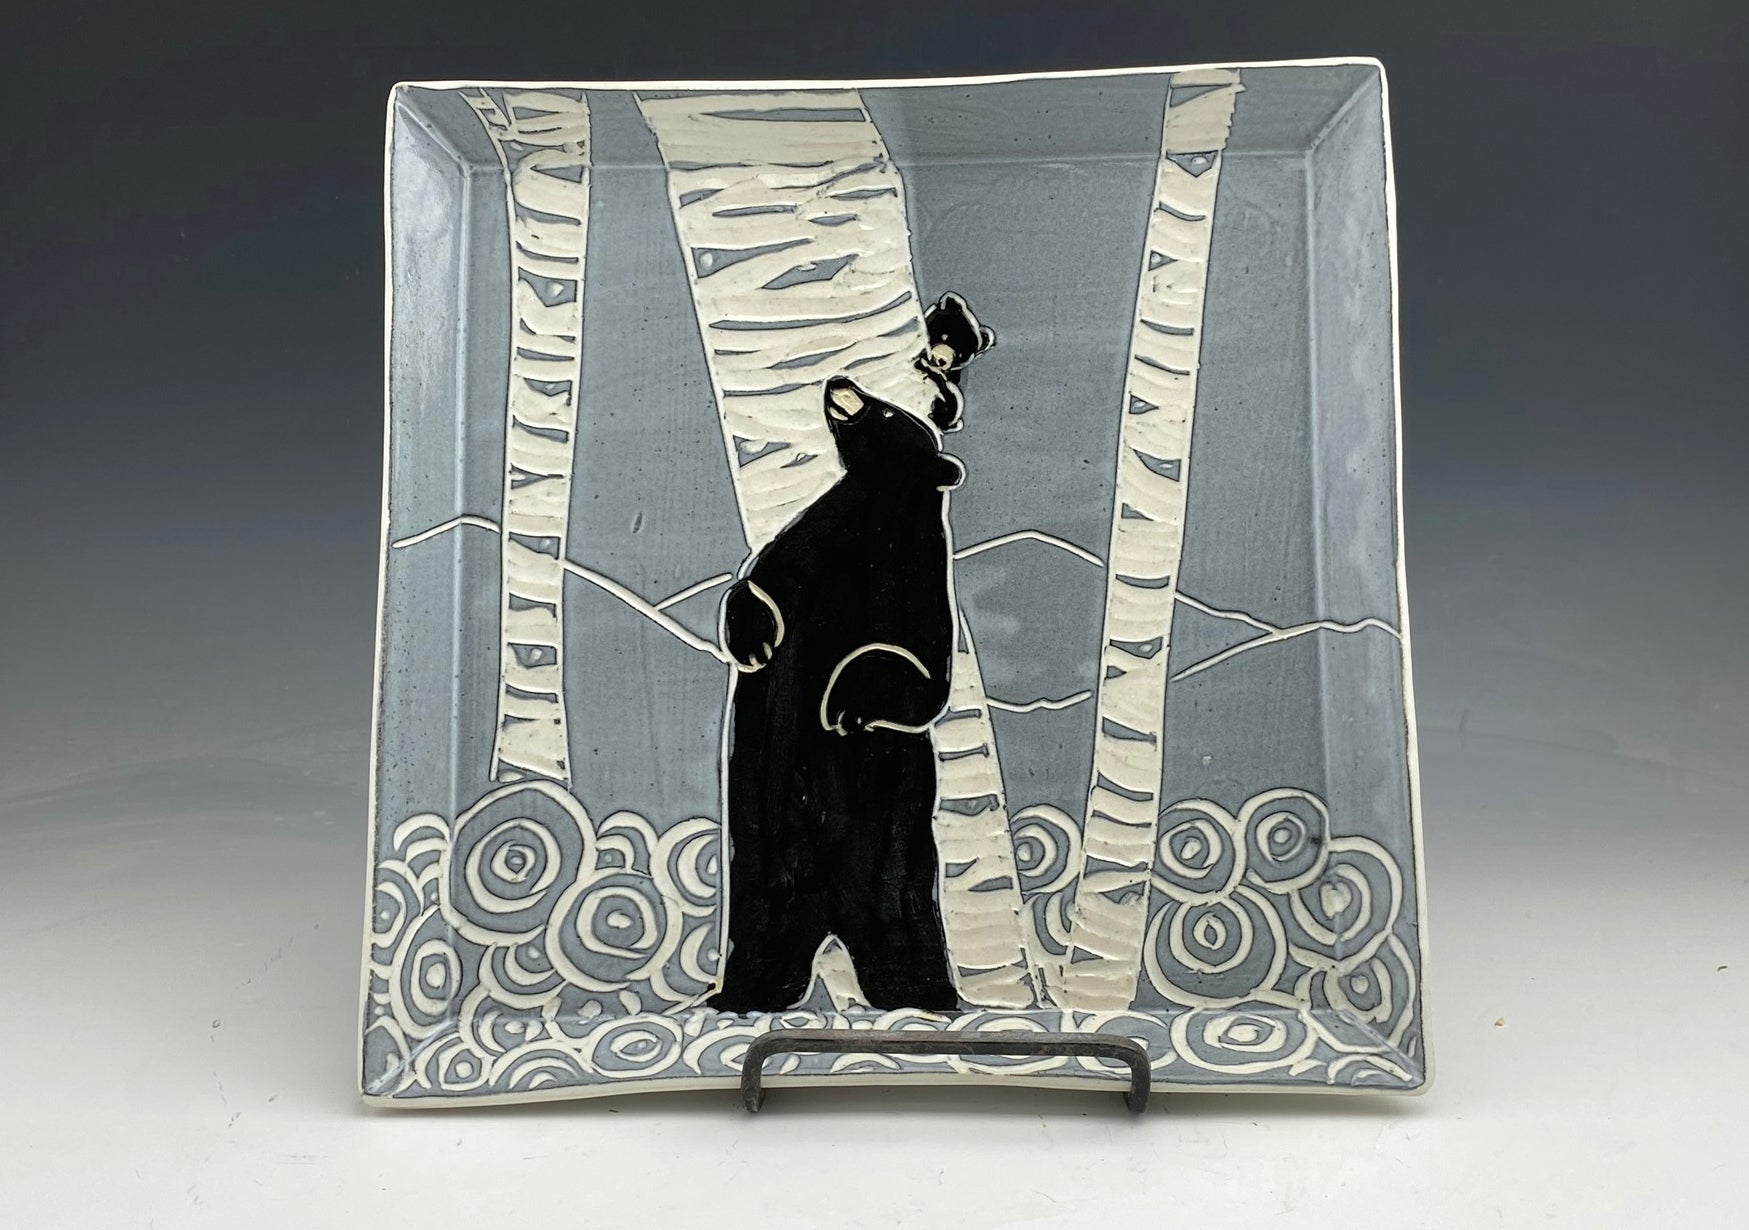 Square Bear Serving plate in black and white Handmade sgraffito pottery